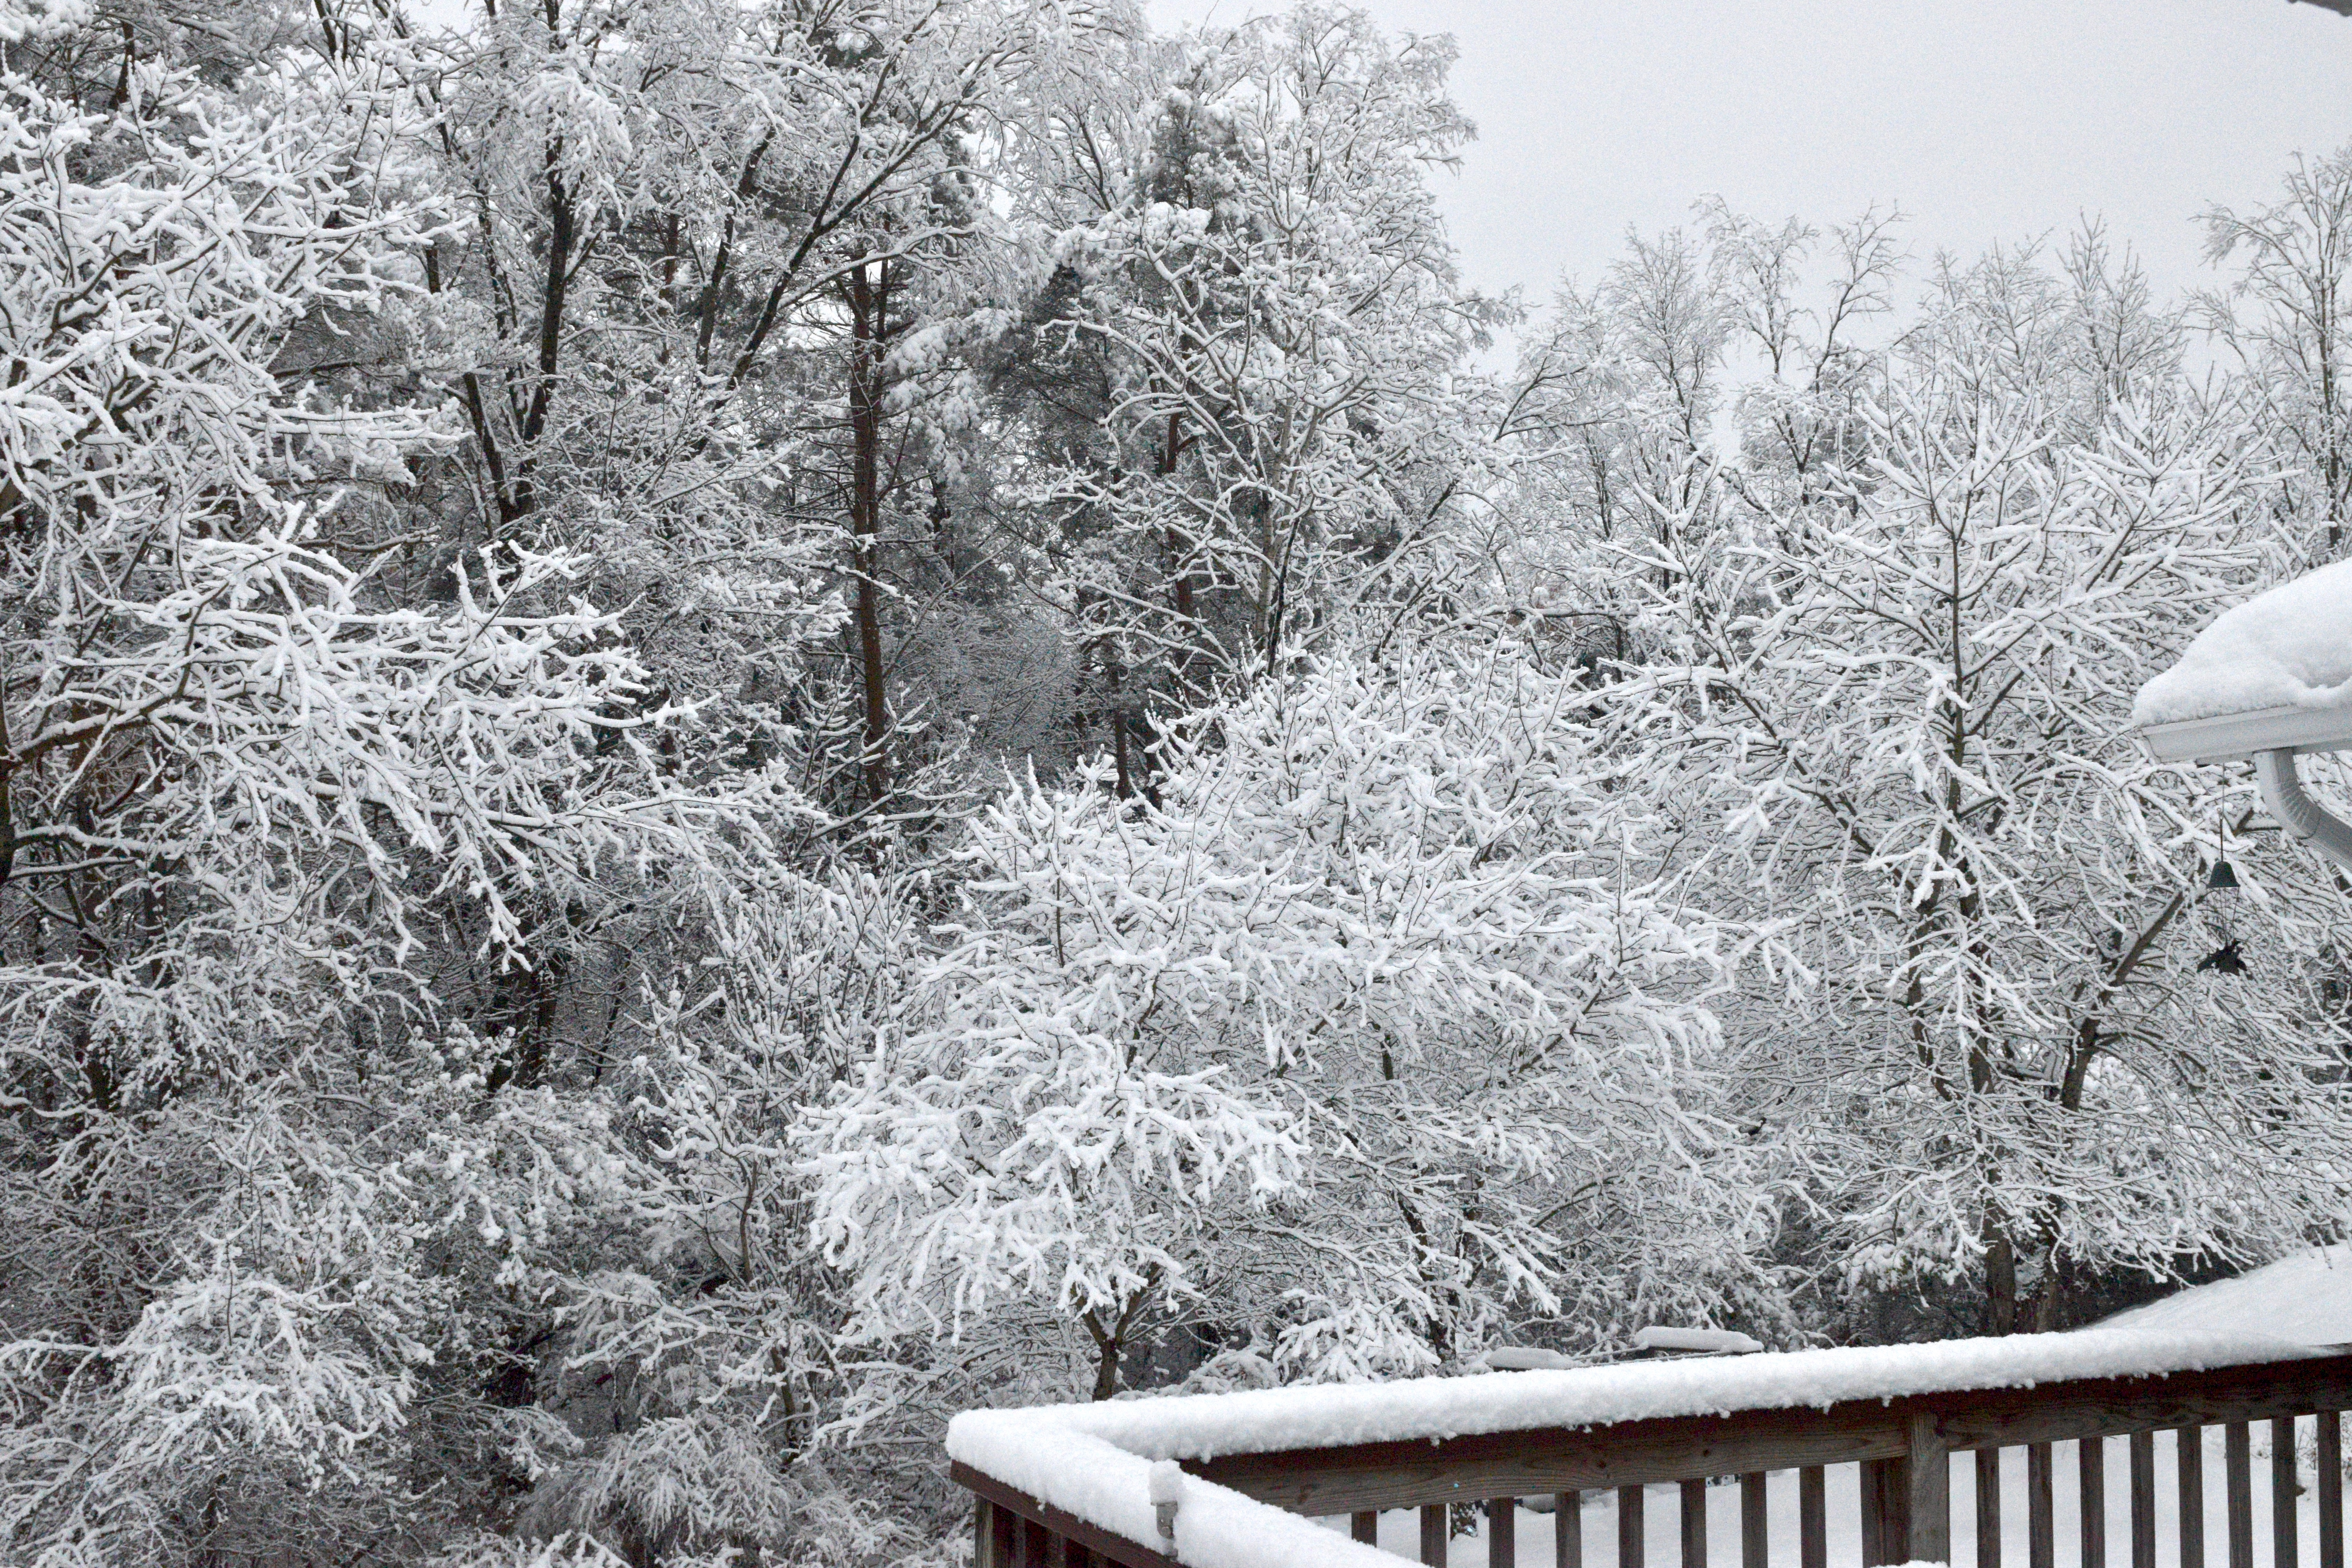 No shortage of white in upstate ny this time of year...